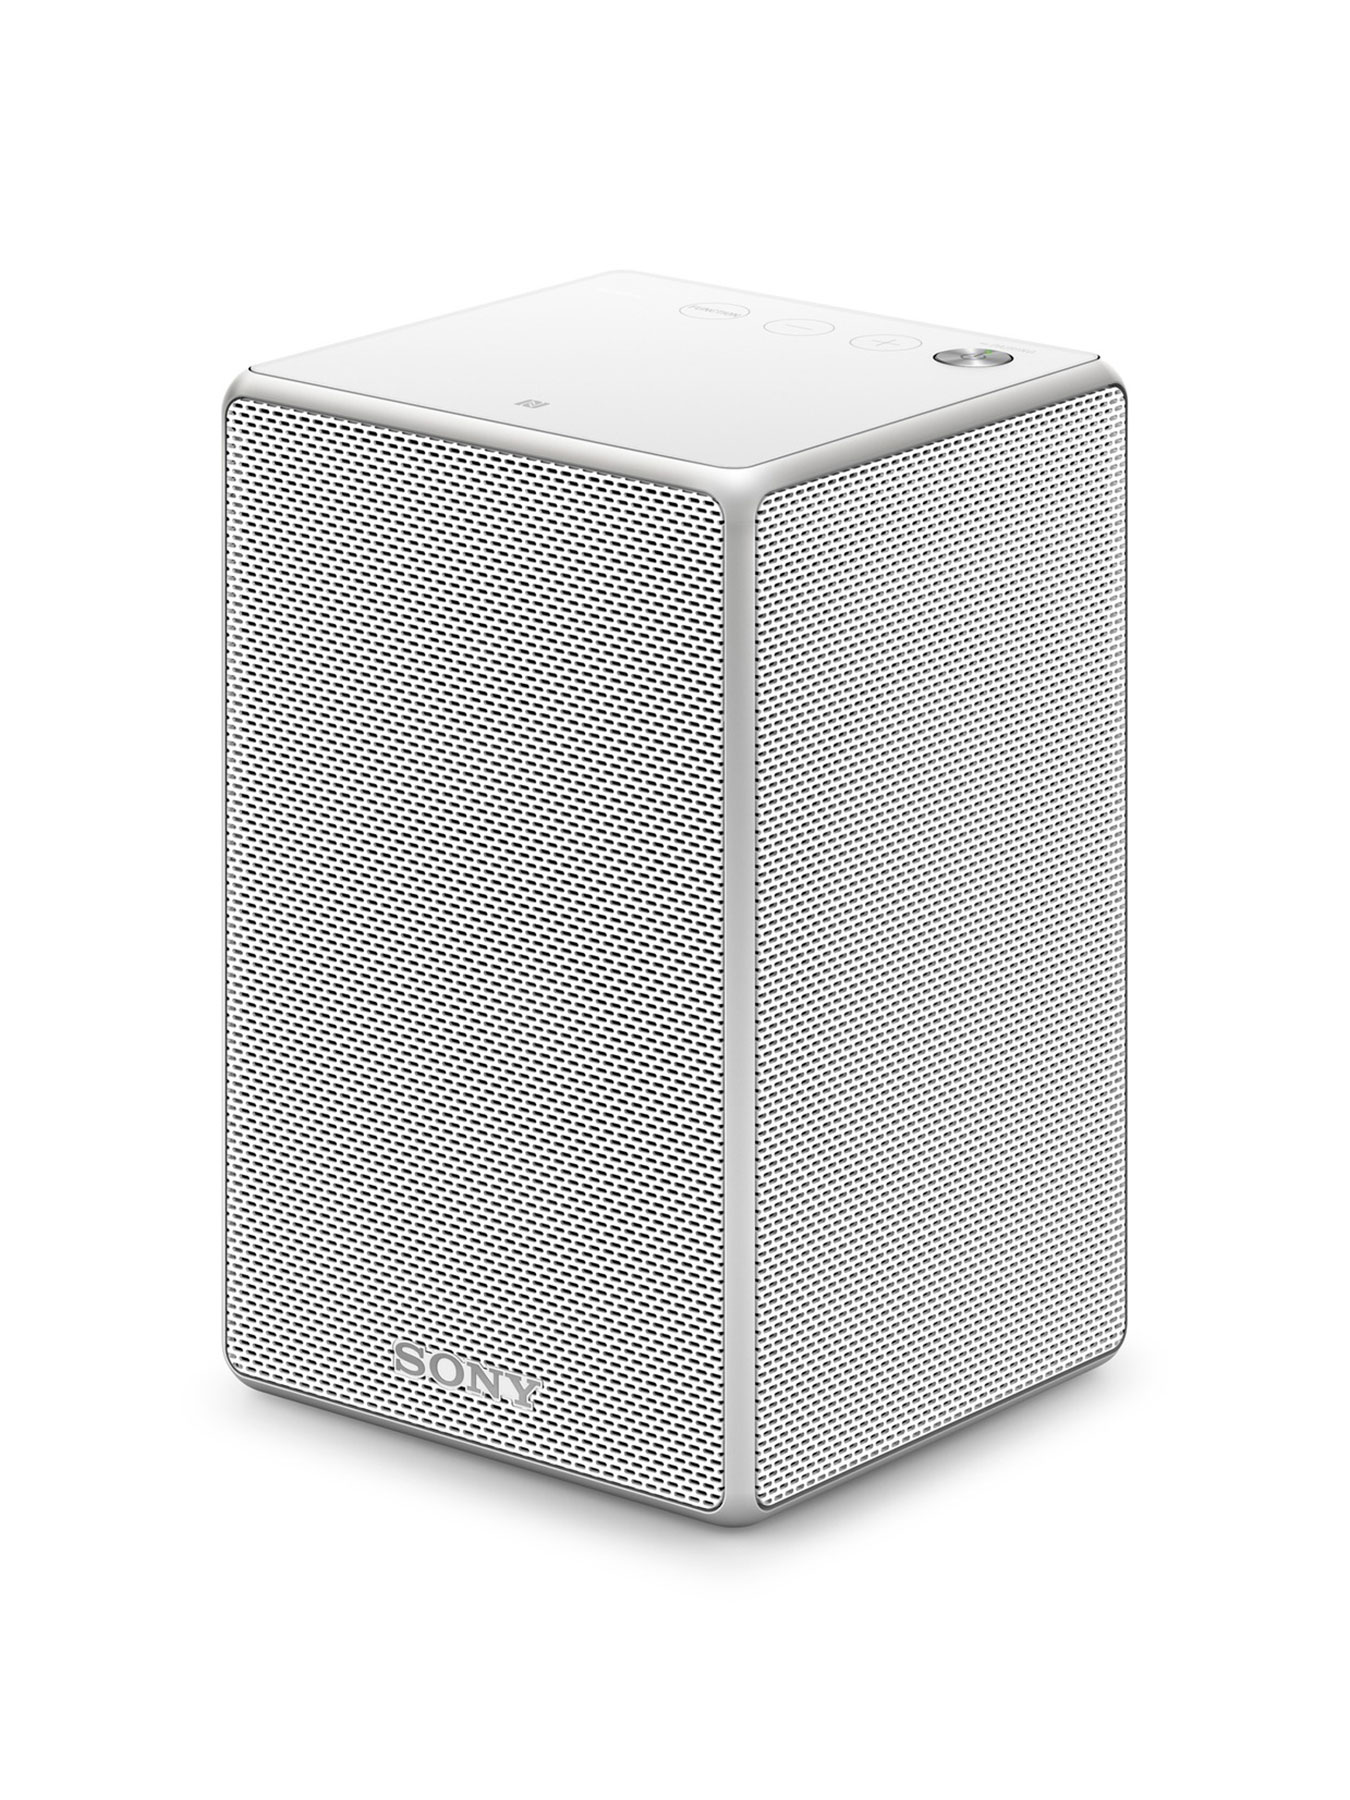 Sony SRSZR5 Wireless Multi Room Speaker with Bluetooth  WiFi